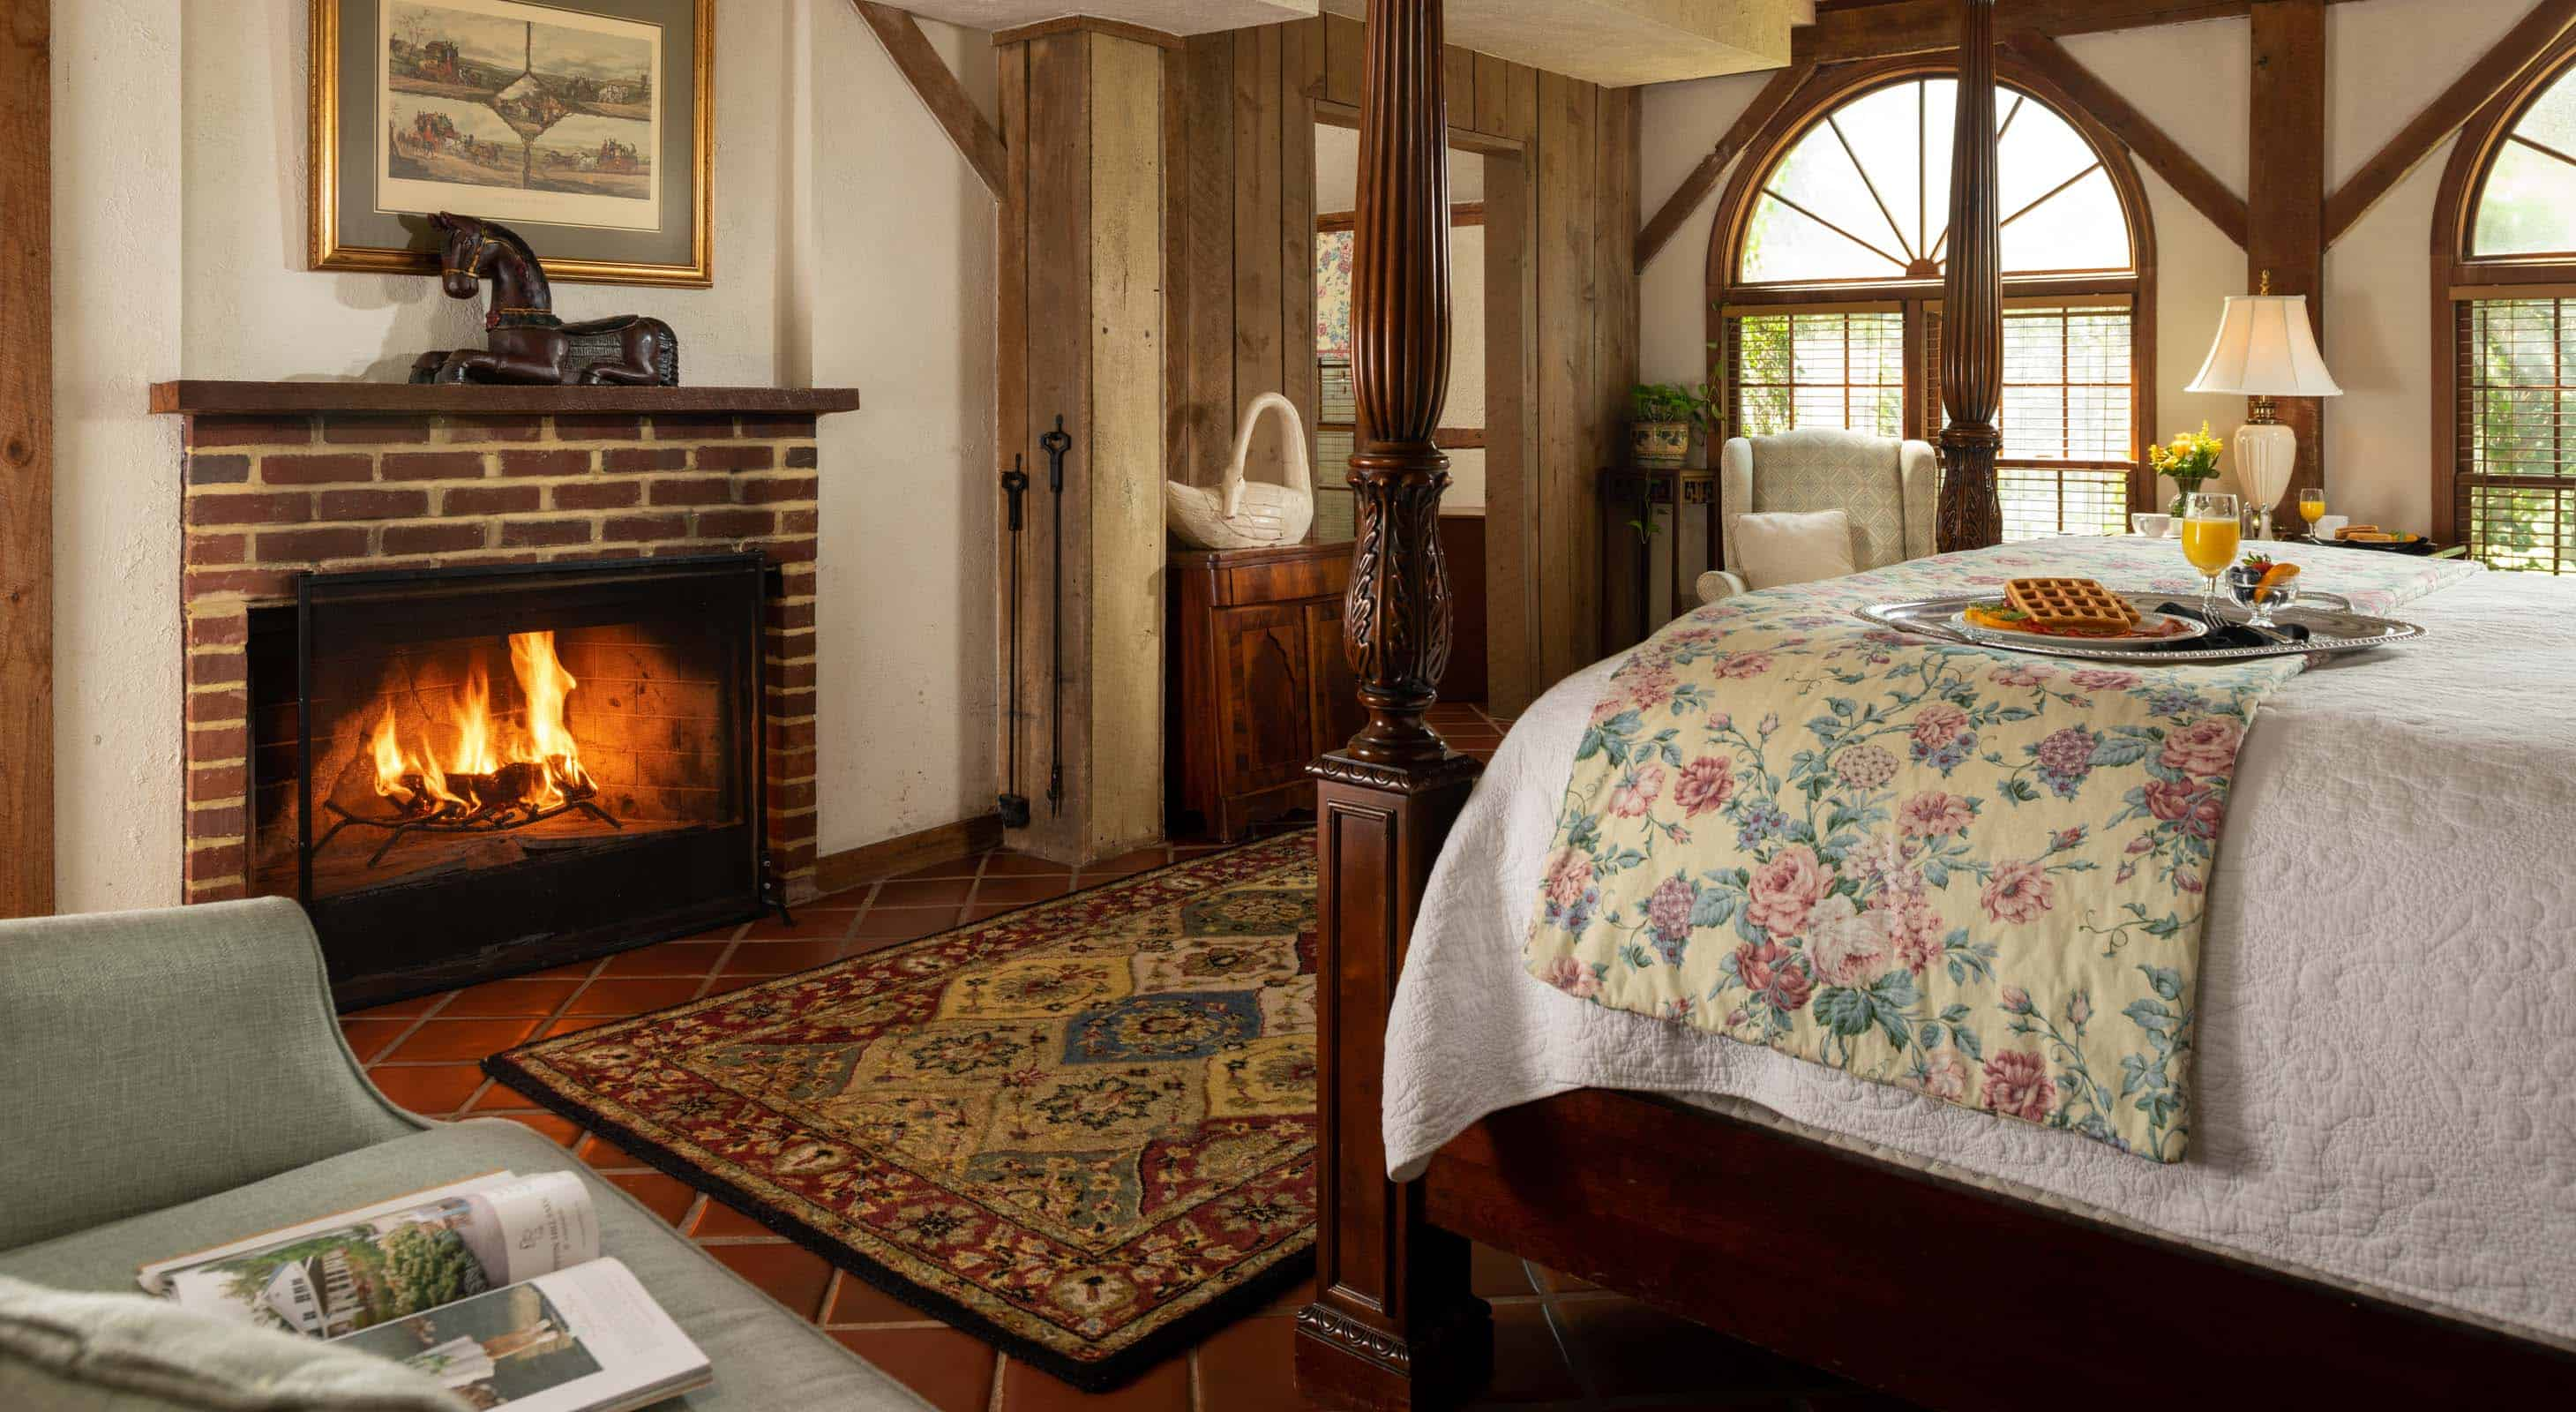 Wood-burning fireplace and seating area in the Carriage House Cottage